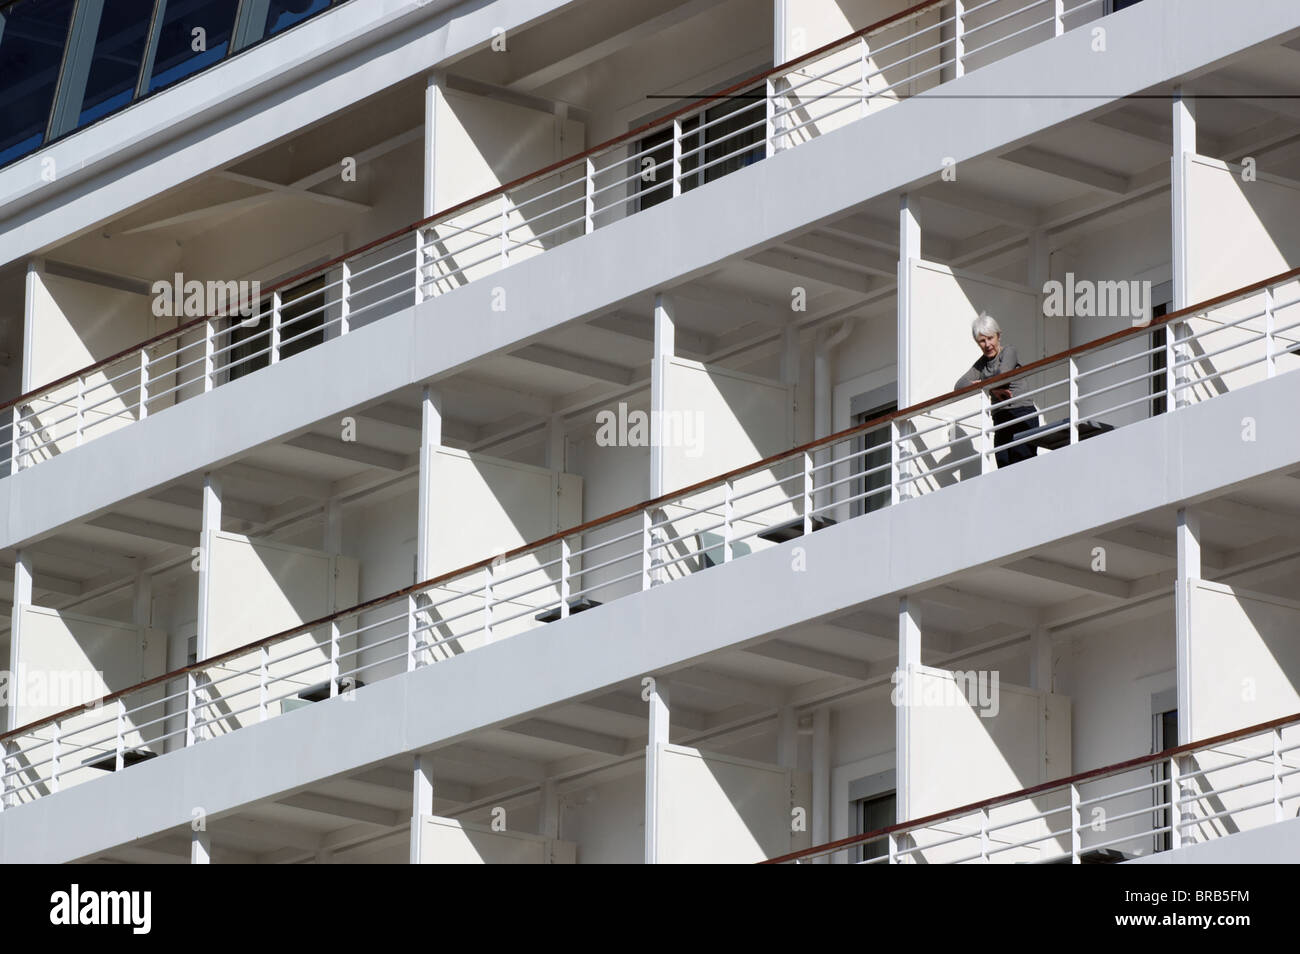 The cabins of a cruise ship with a woman looking down at the harbour - Stock Image